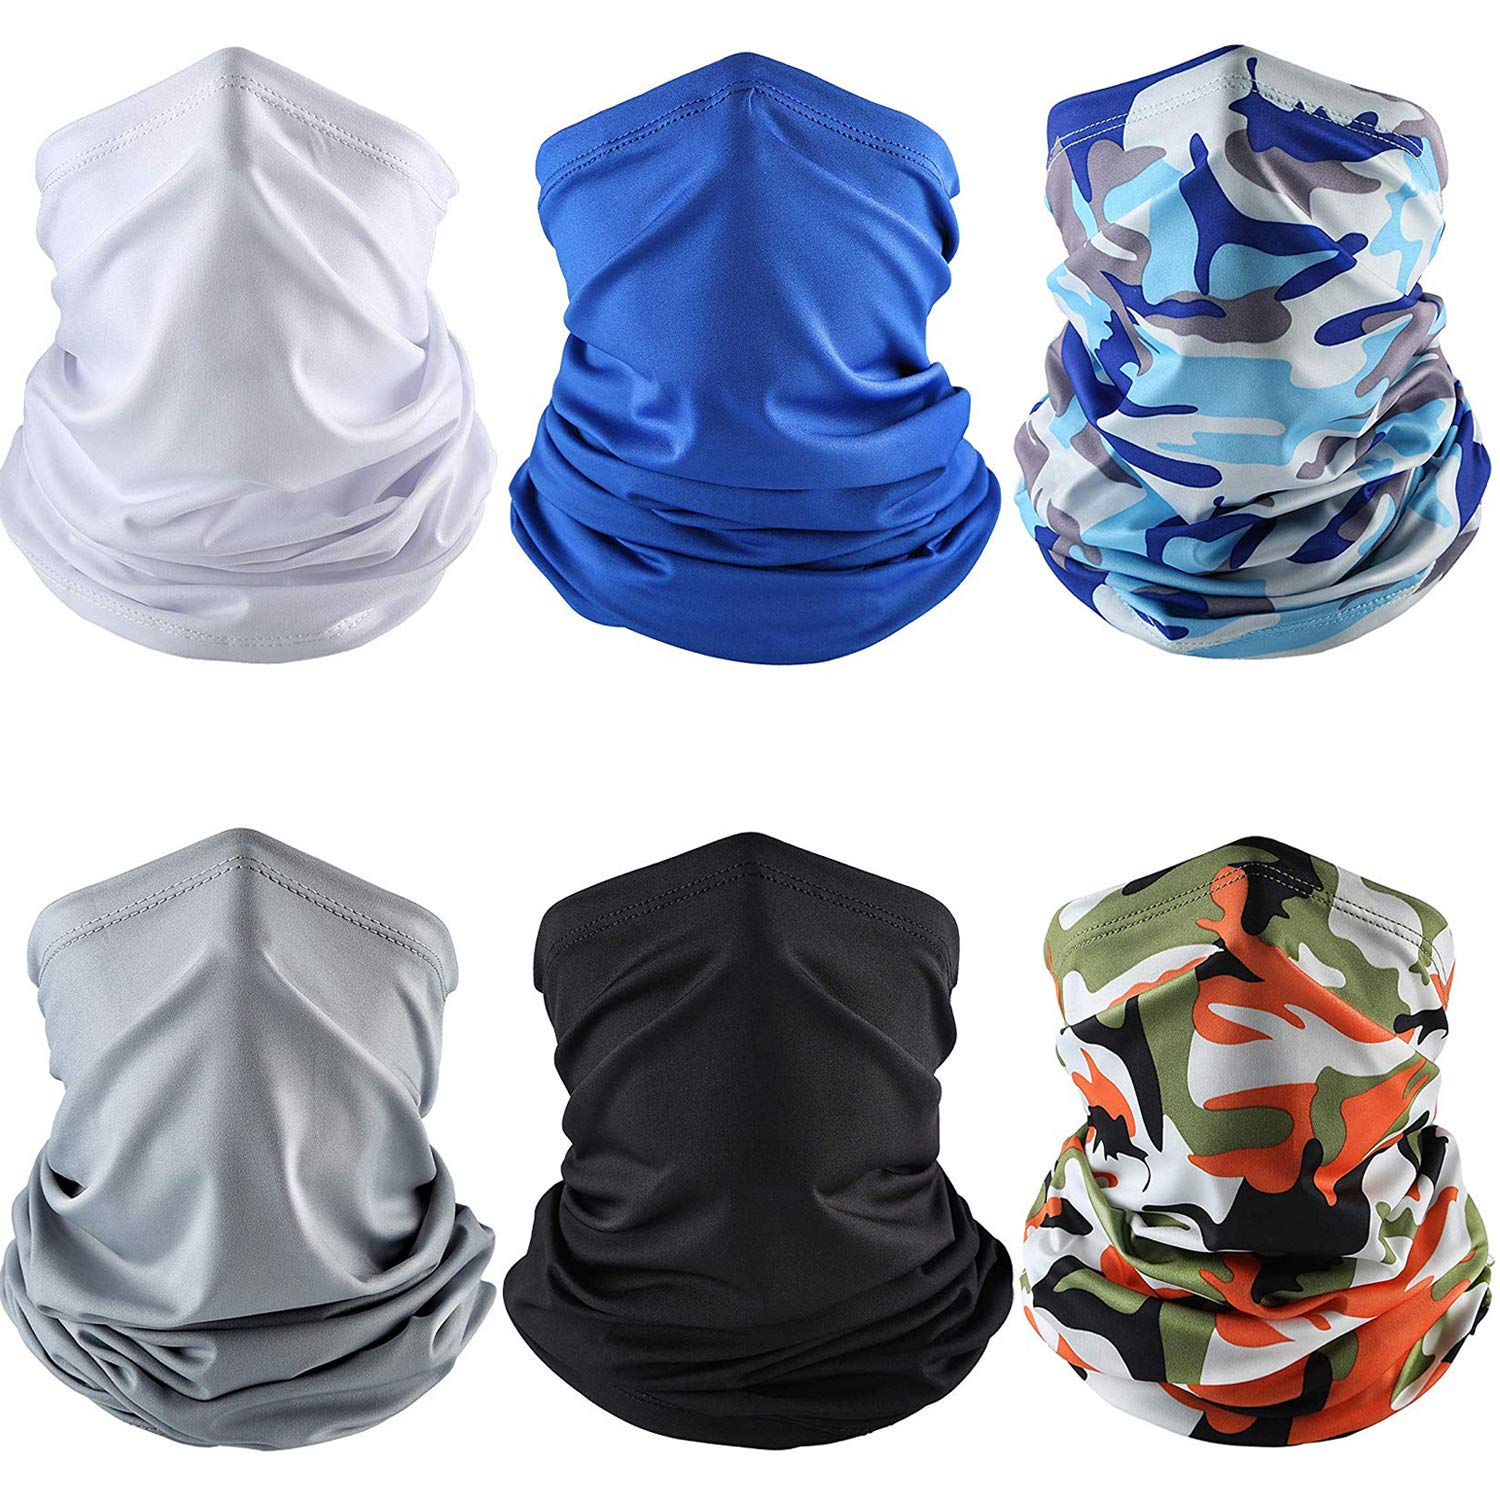 6 Pieces Summer UV Protection Face Mask Neck Gaiter Scarf Sunscreen Breathable Bandana (Color Set 2)